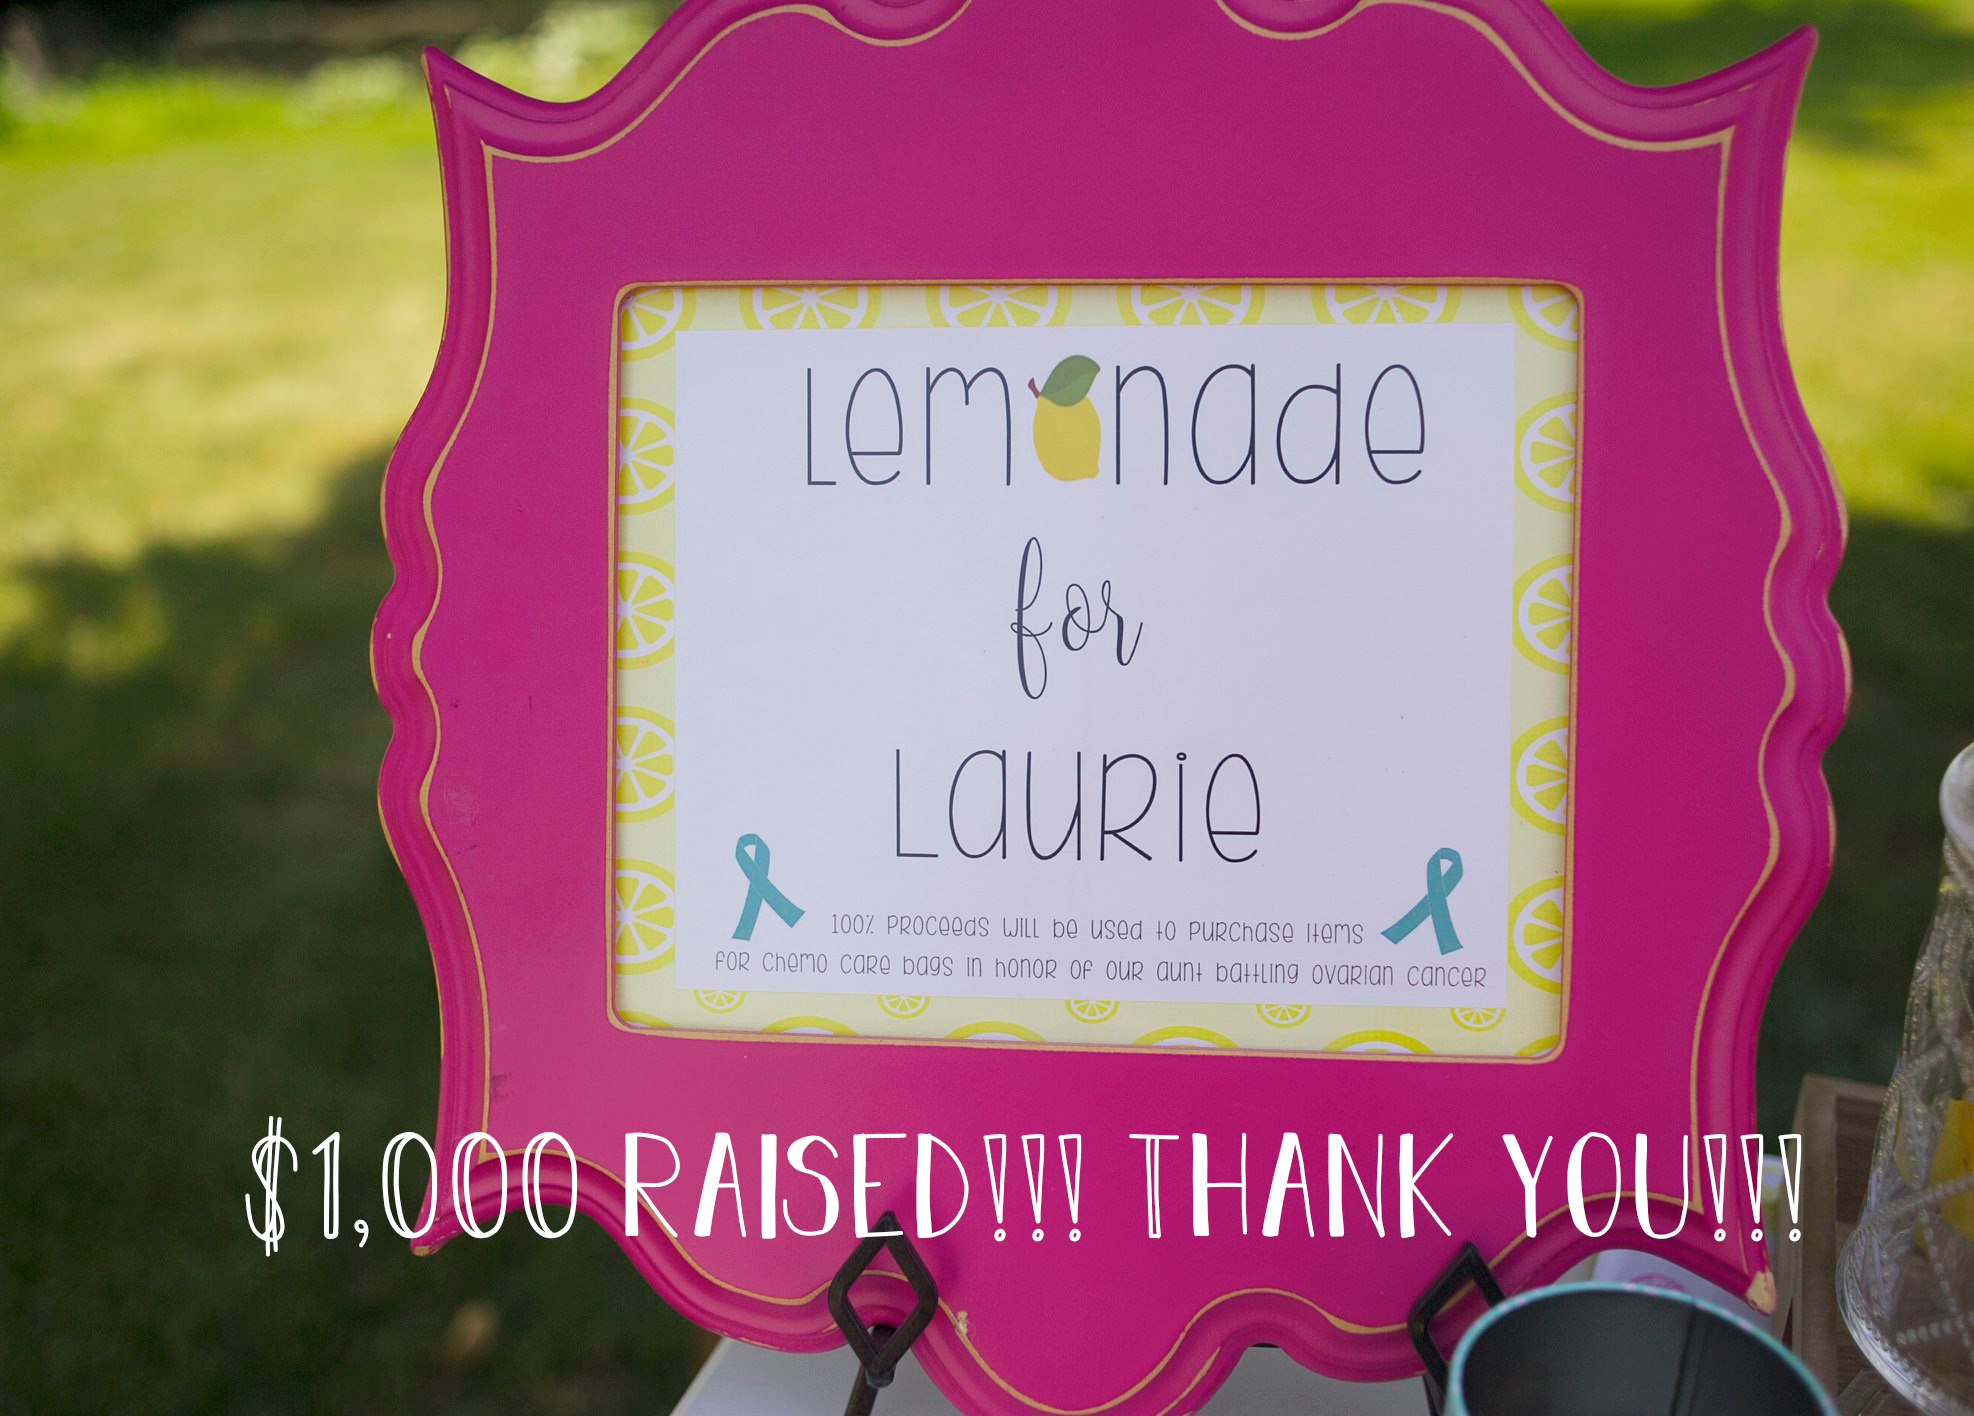 Lemonade for Laurie Fundraiser | Wholesome LLC